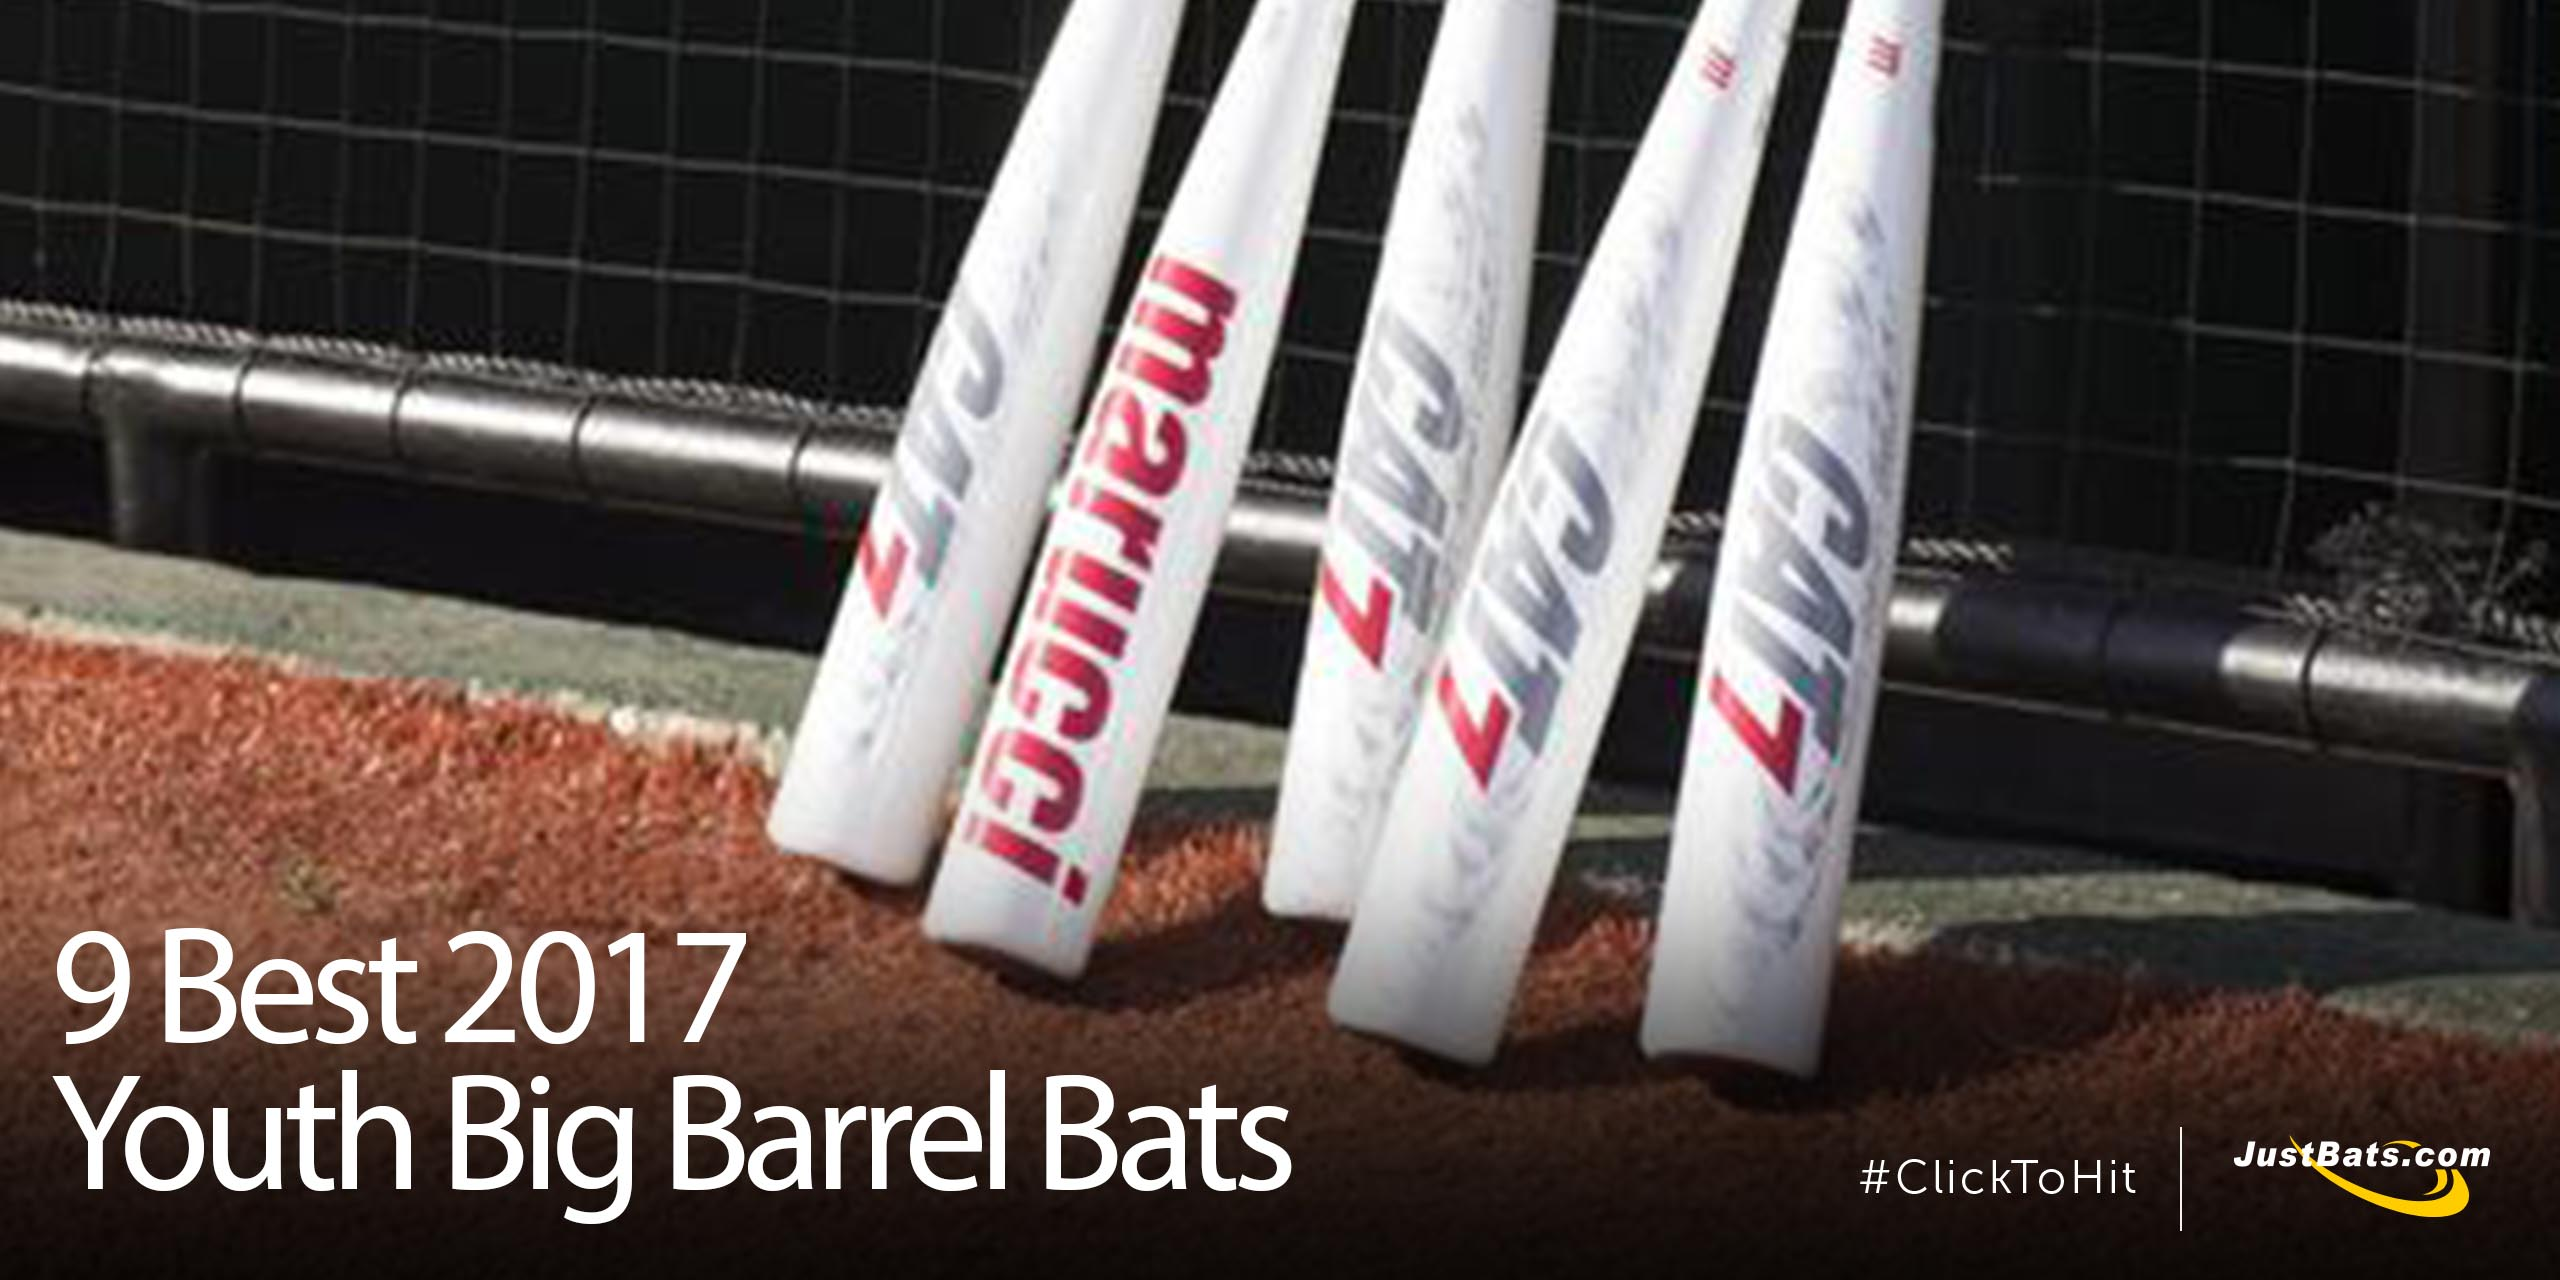 9 Best 2017 Youth Big Barrel Bats - Blog-1.jpg